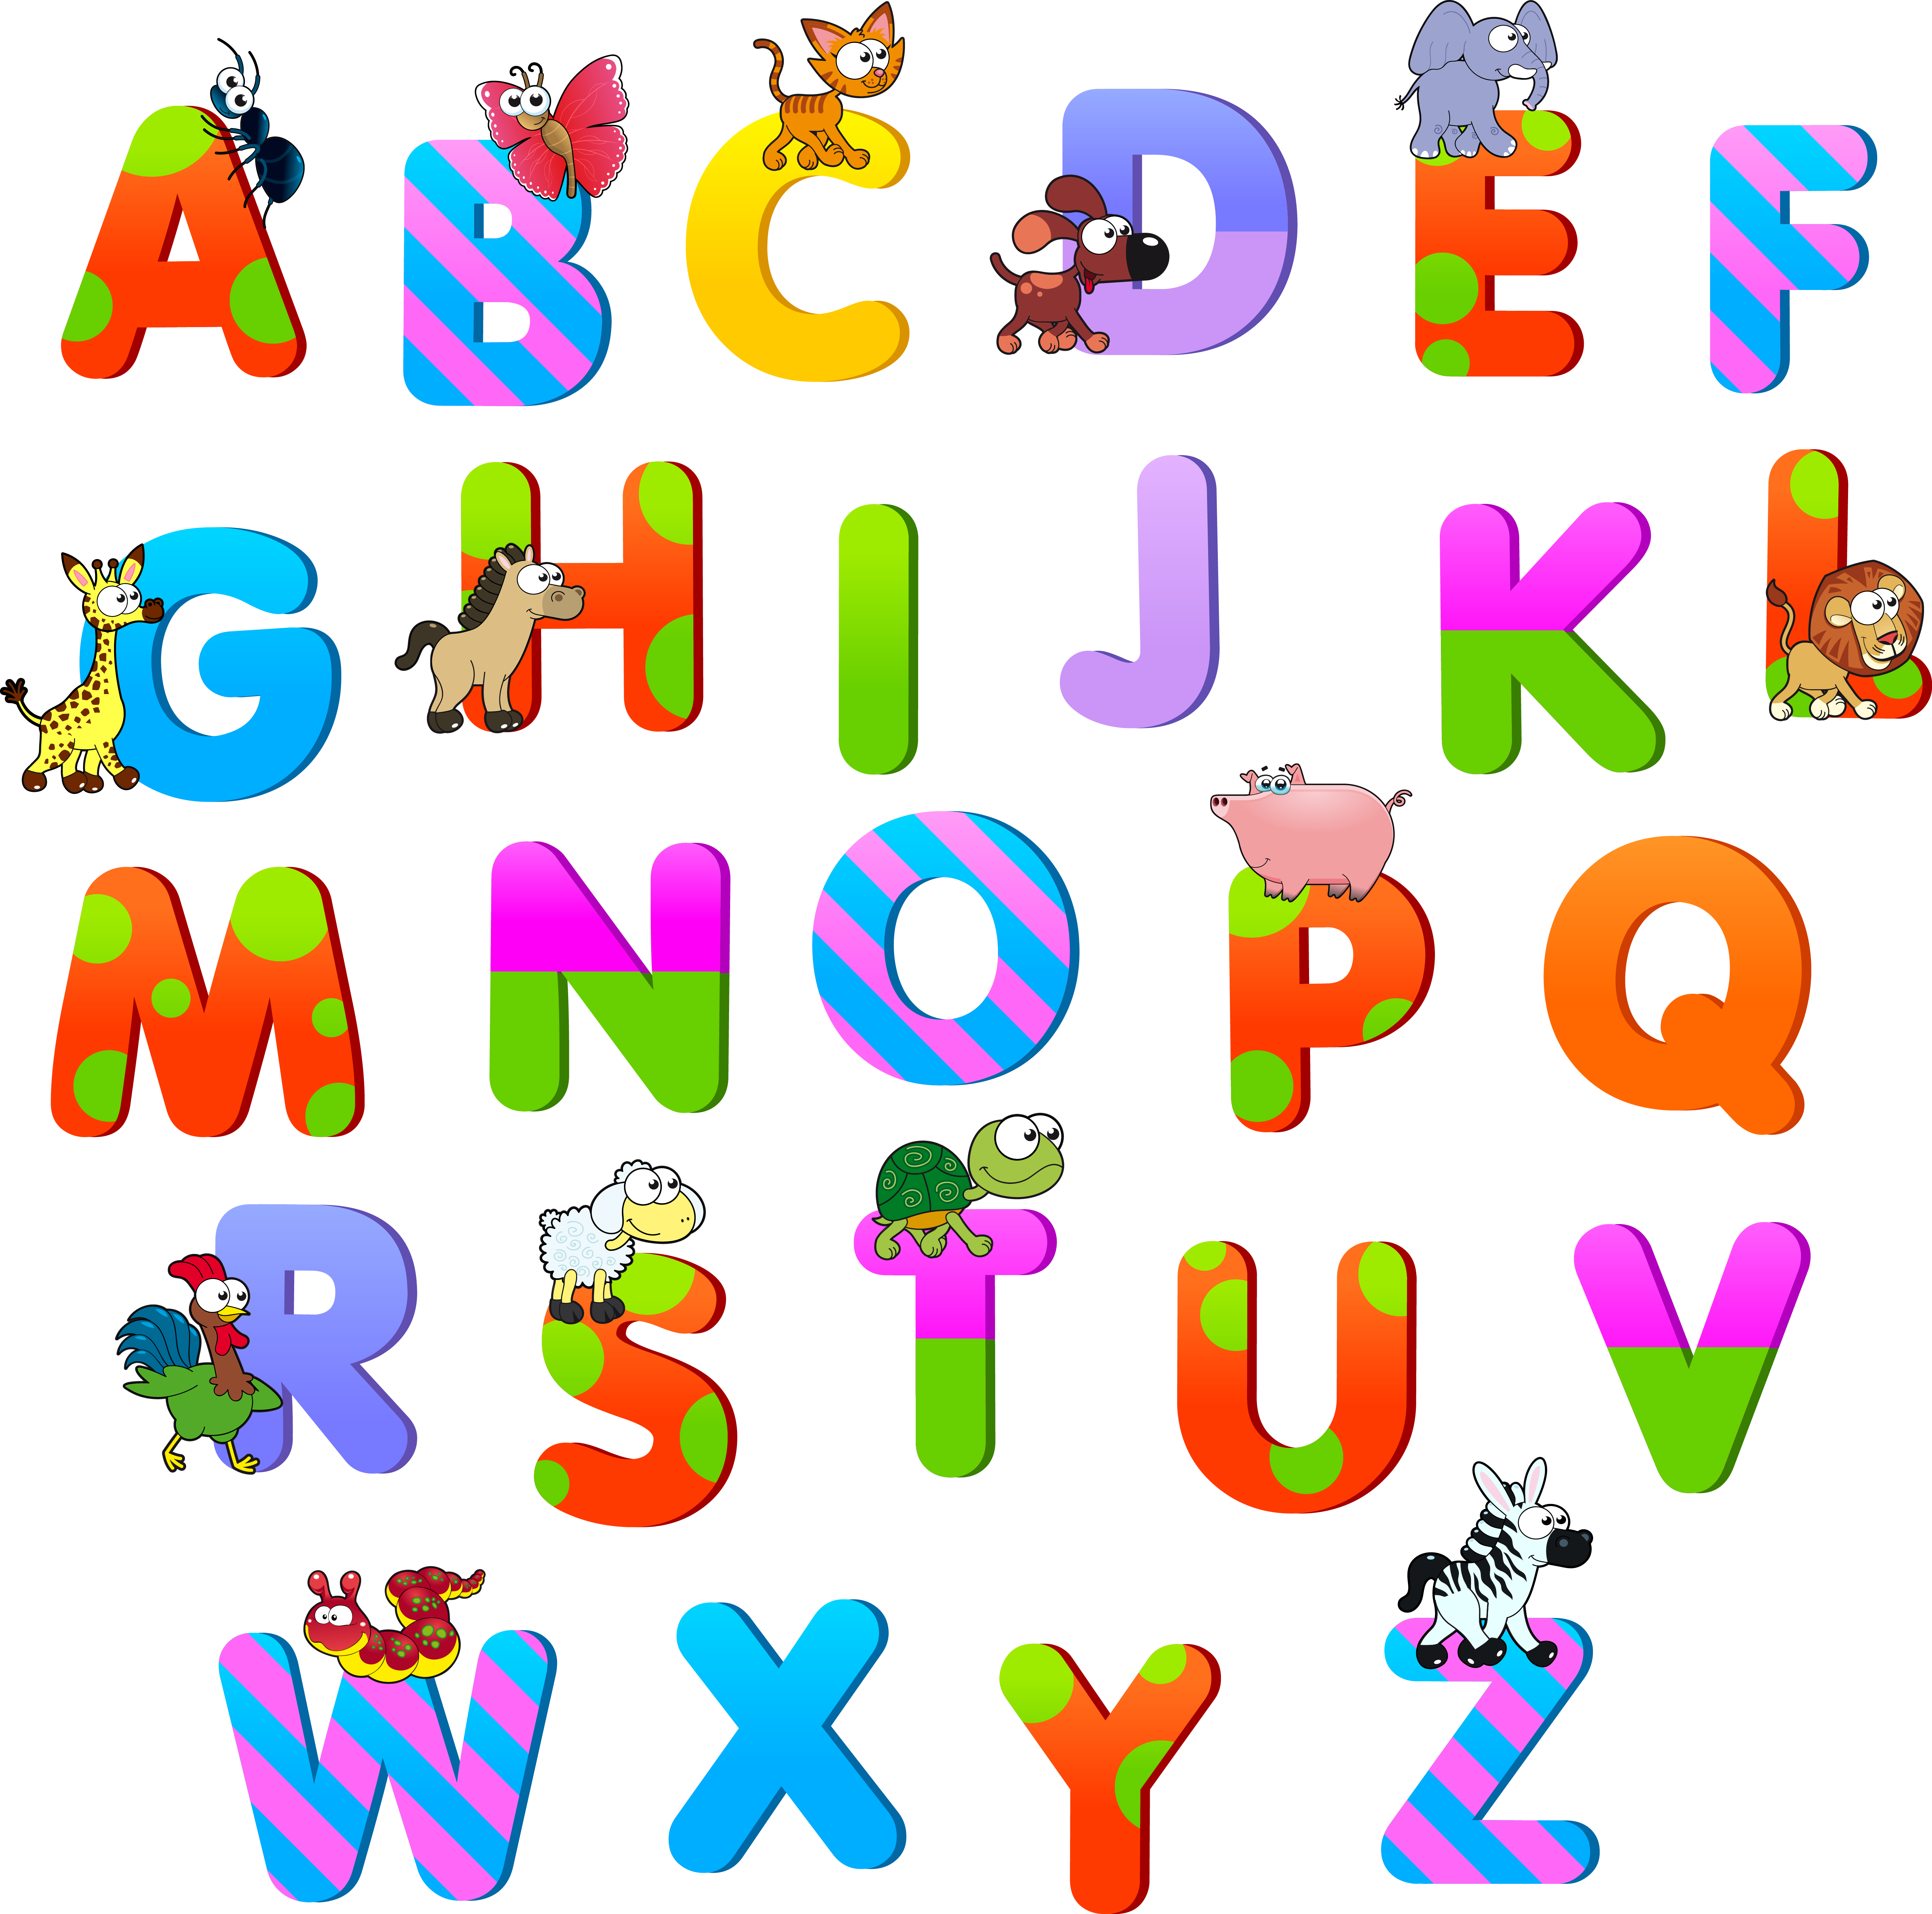 Download Alphabet Photography Material Illustration Vector Letter.